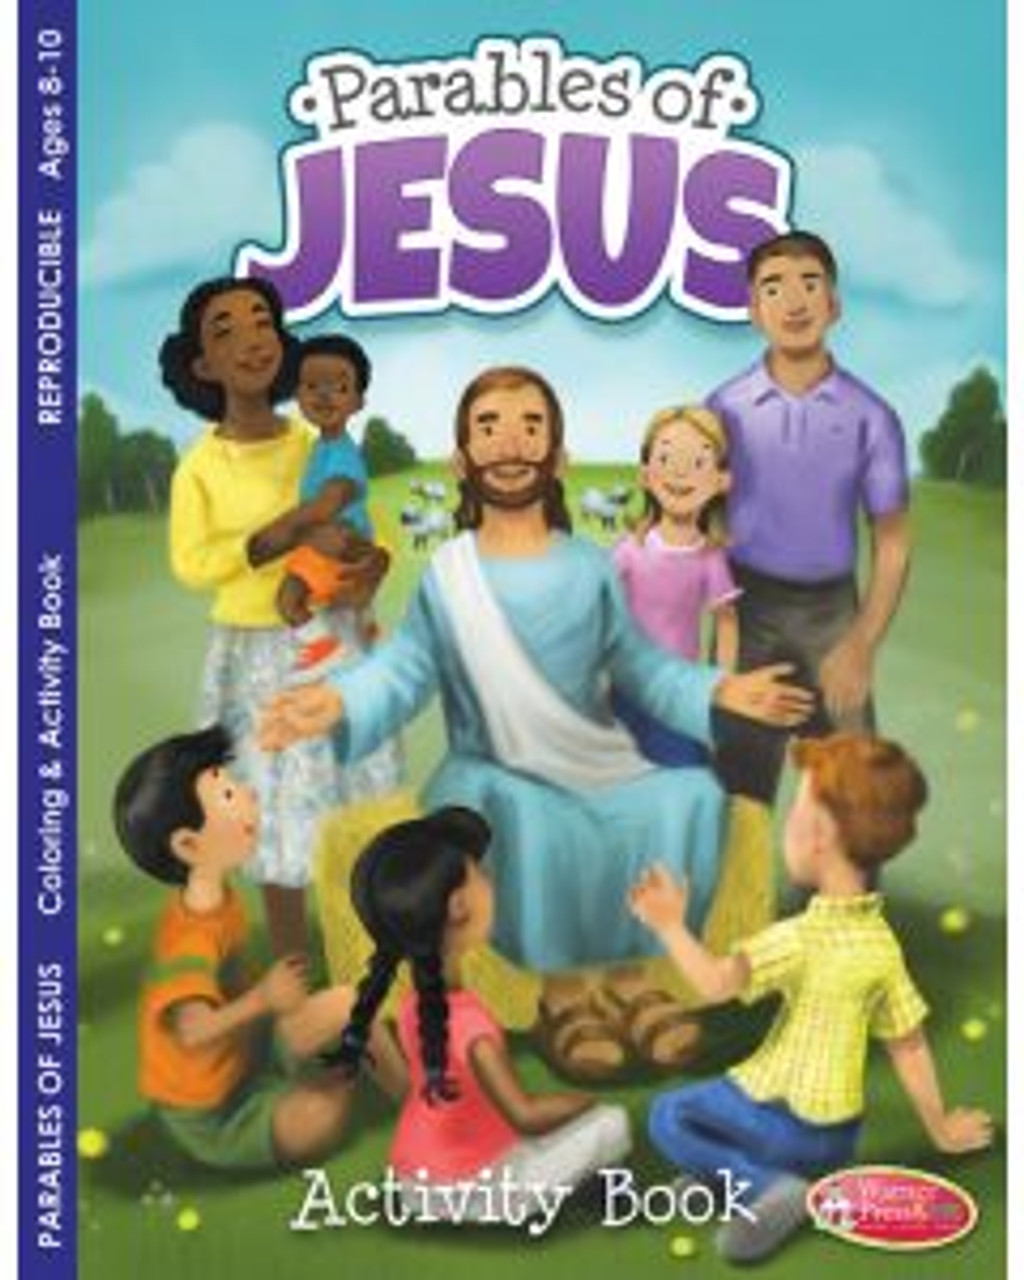 Parables of Jesus (activity book)